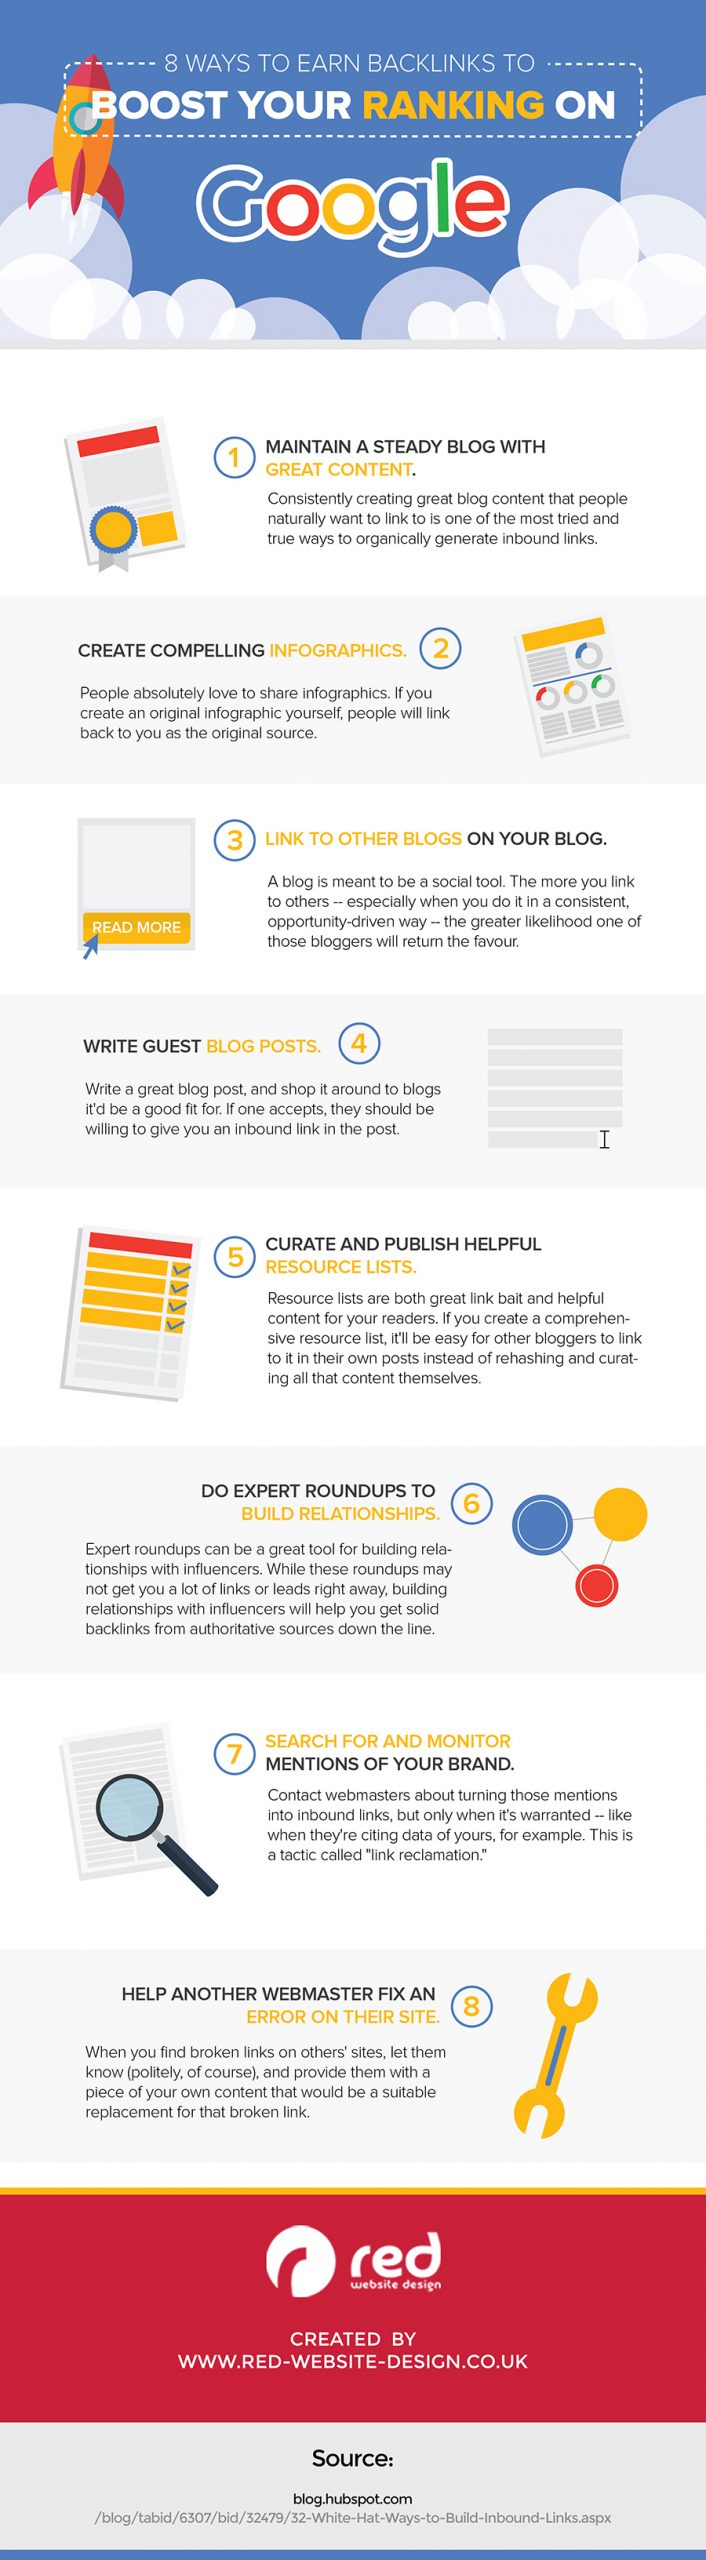 Infographic on SEO search techniques.